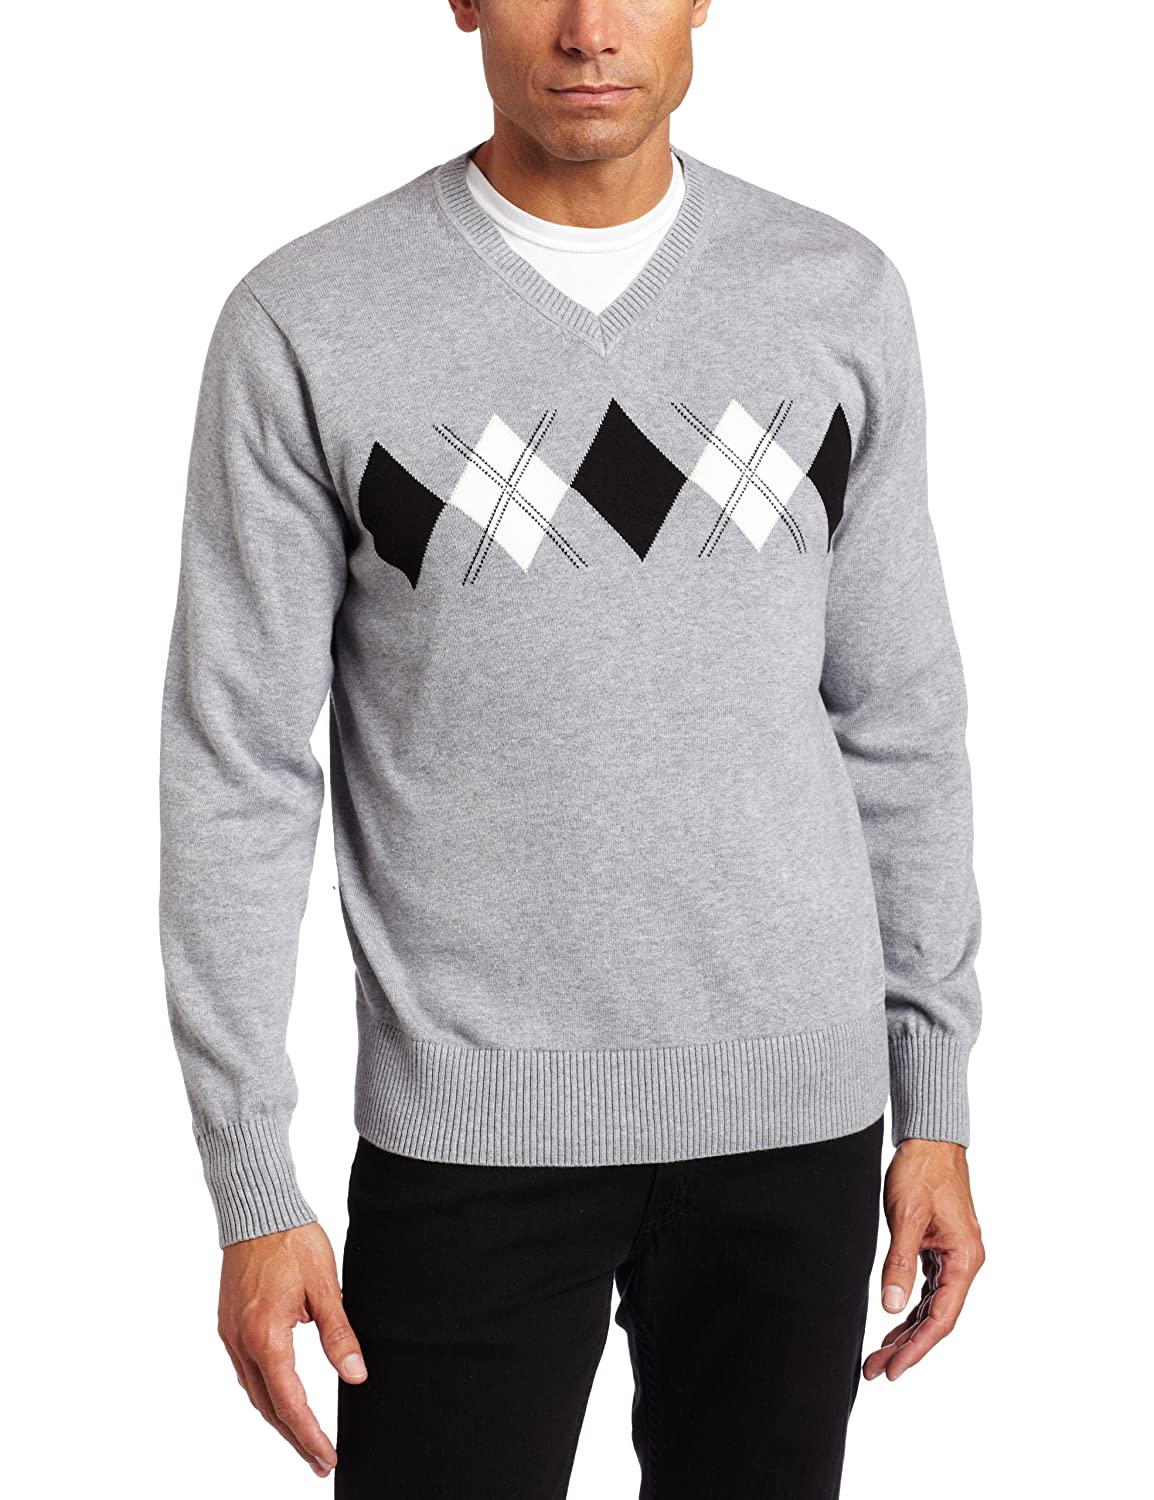 Up to 60% OFF Sweaters & Fleece for the Whole Family